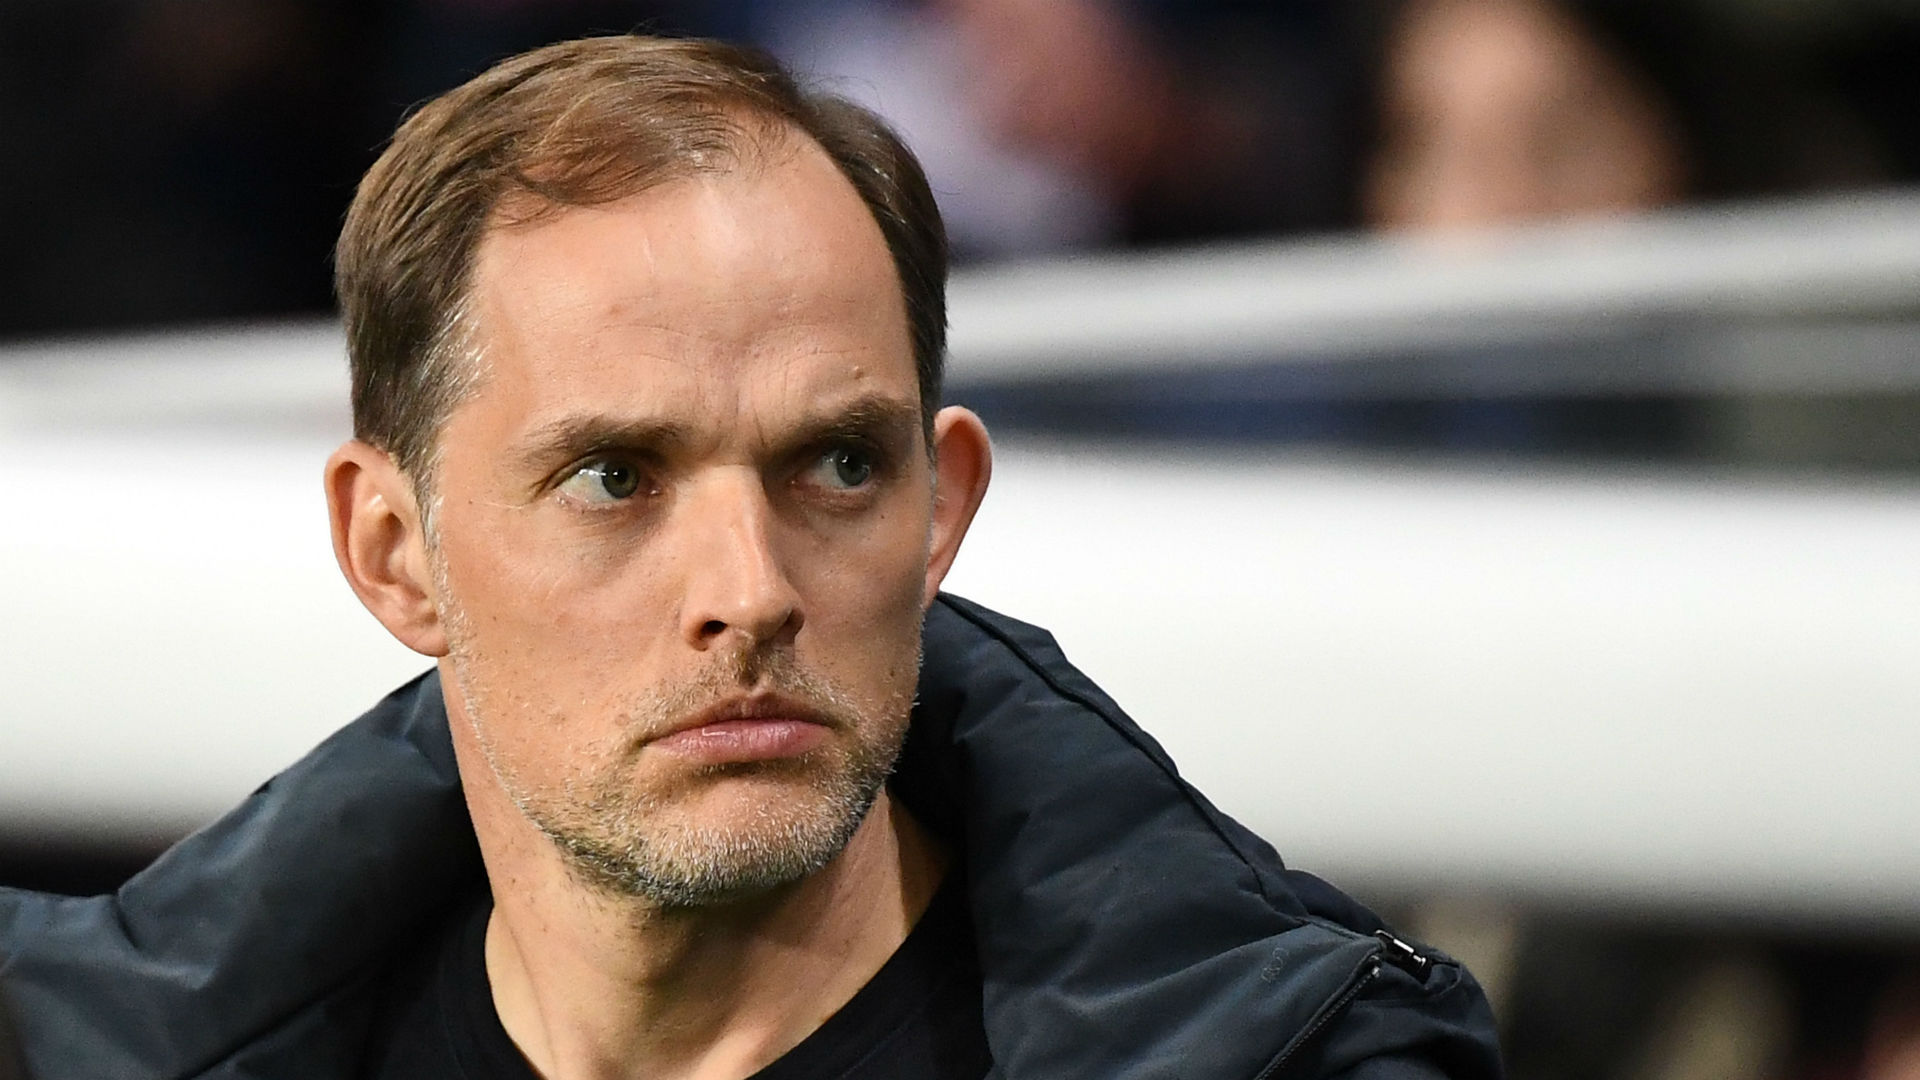 'PSG lack players' - Tuchel disagrees with Mbappe's 'personality' assessment